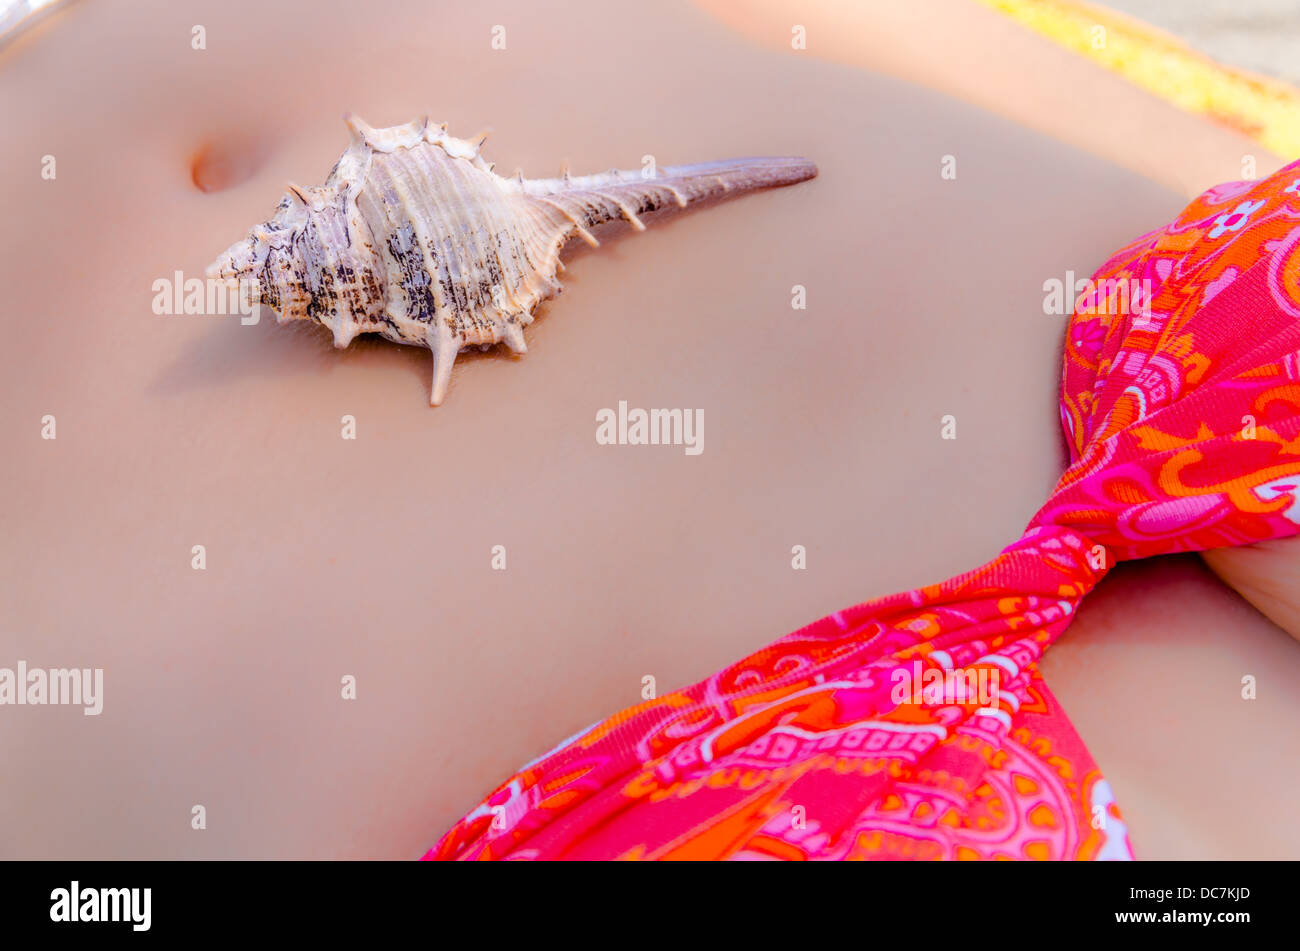 Seashell on the bare belly of a young woman wearing a bikini, close up view - Stock Image